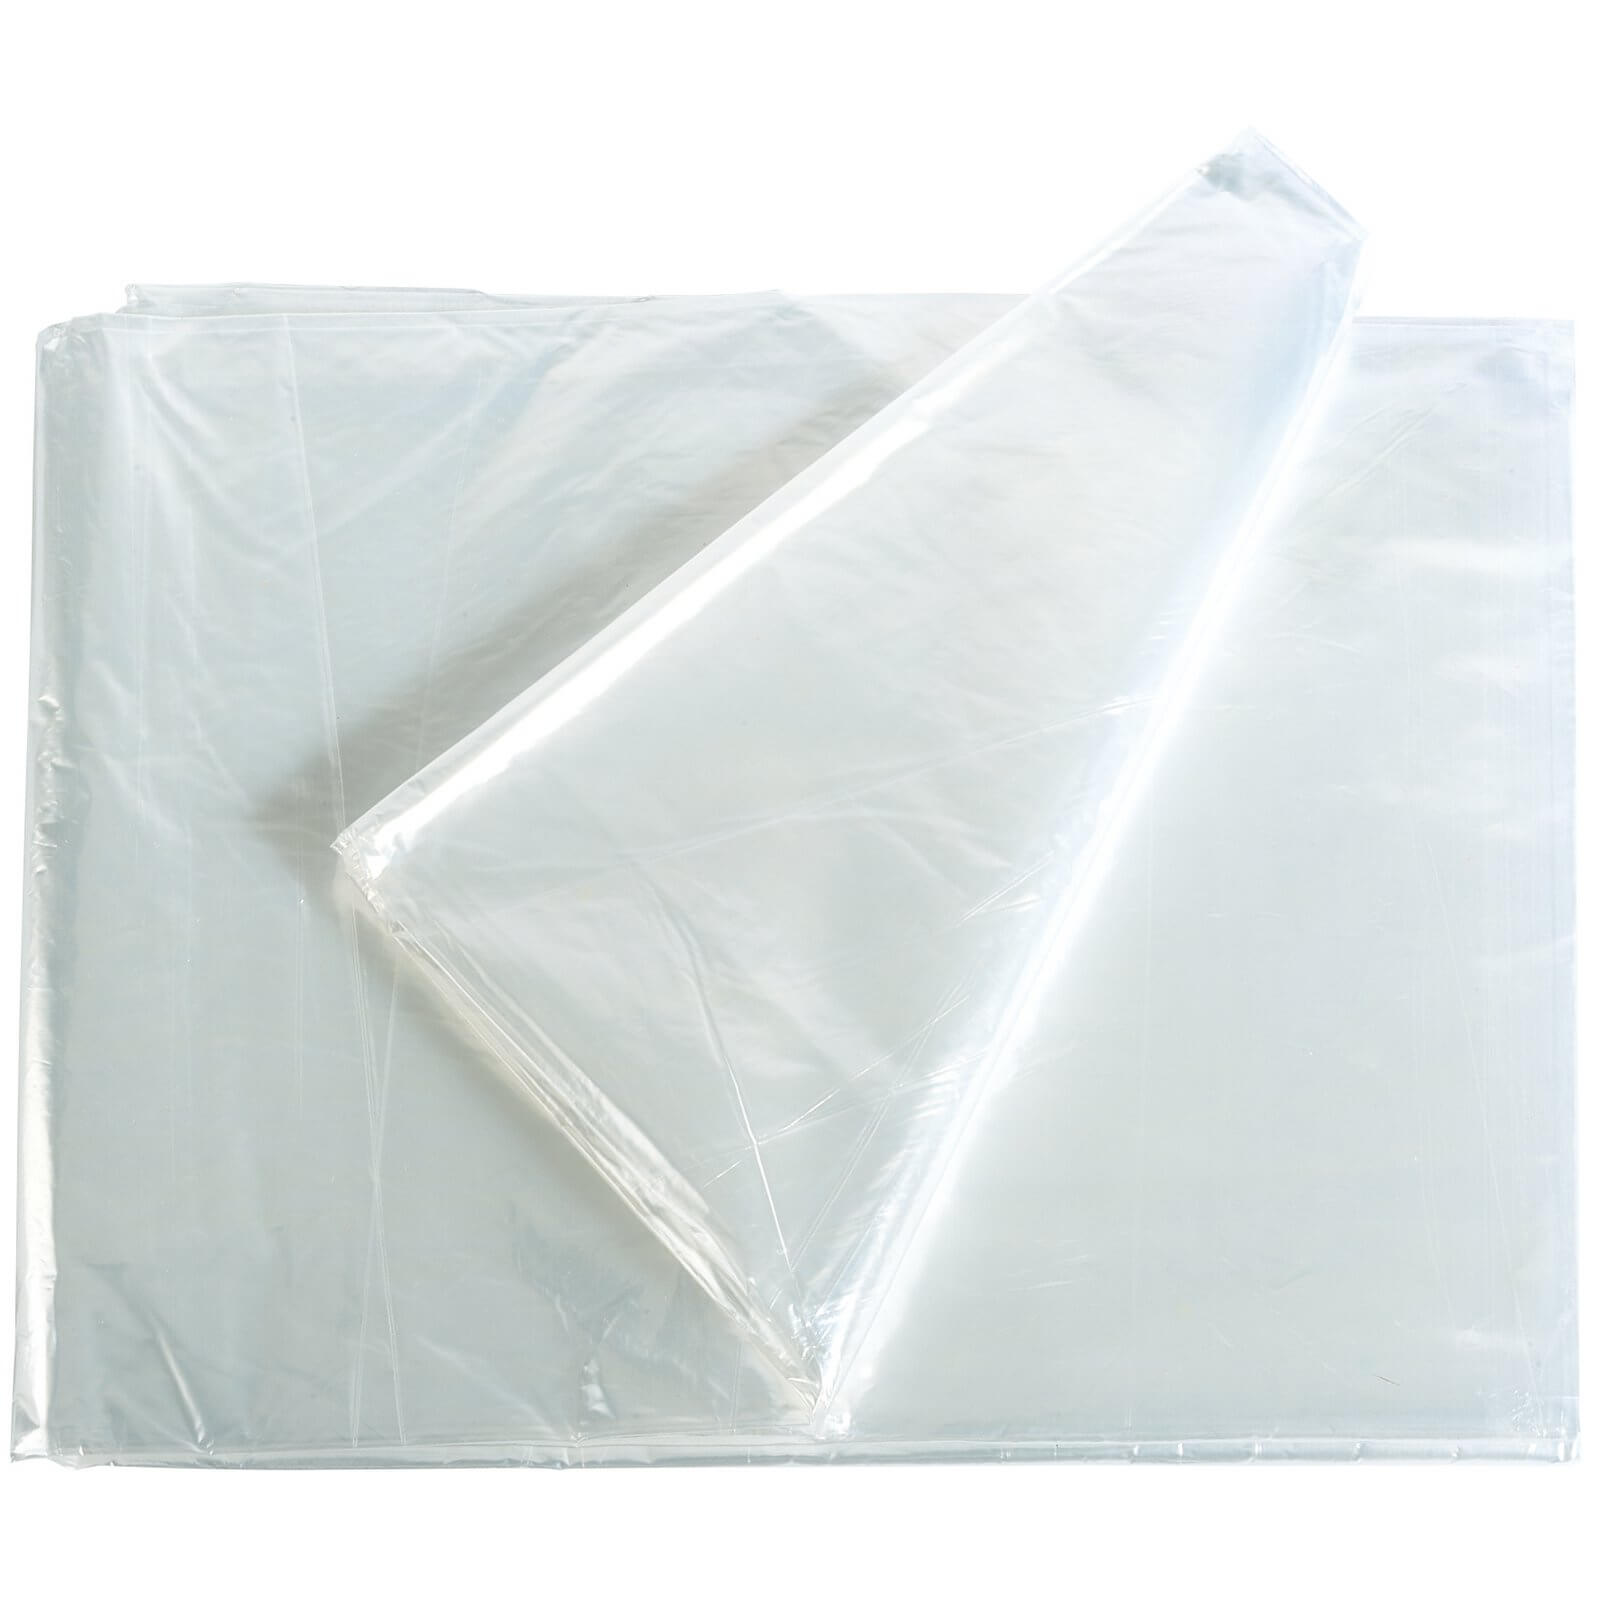 Image of Draper Polythene Dust Sheet 3.6m 3.6m Pack of 1